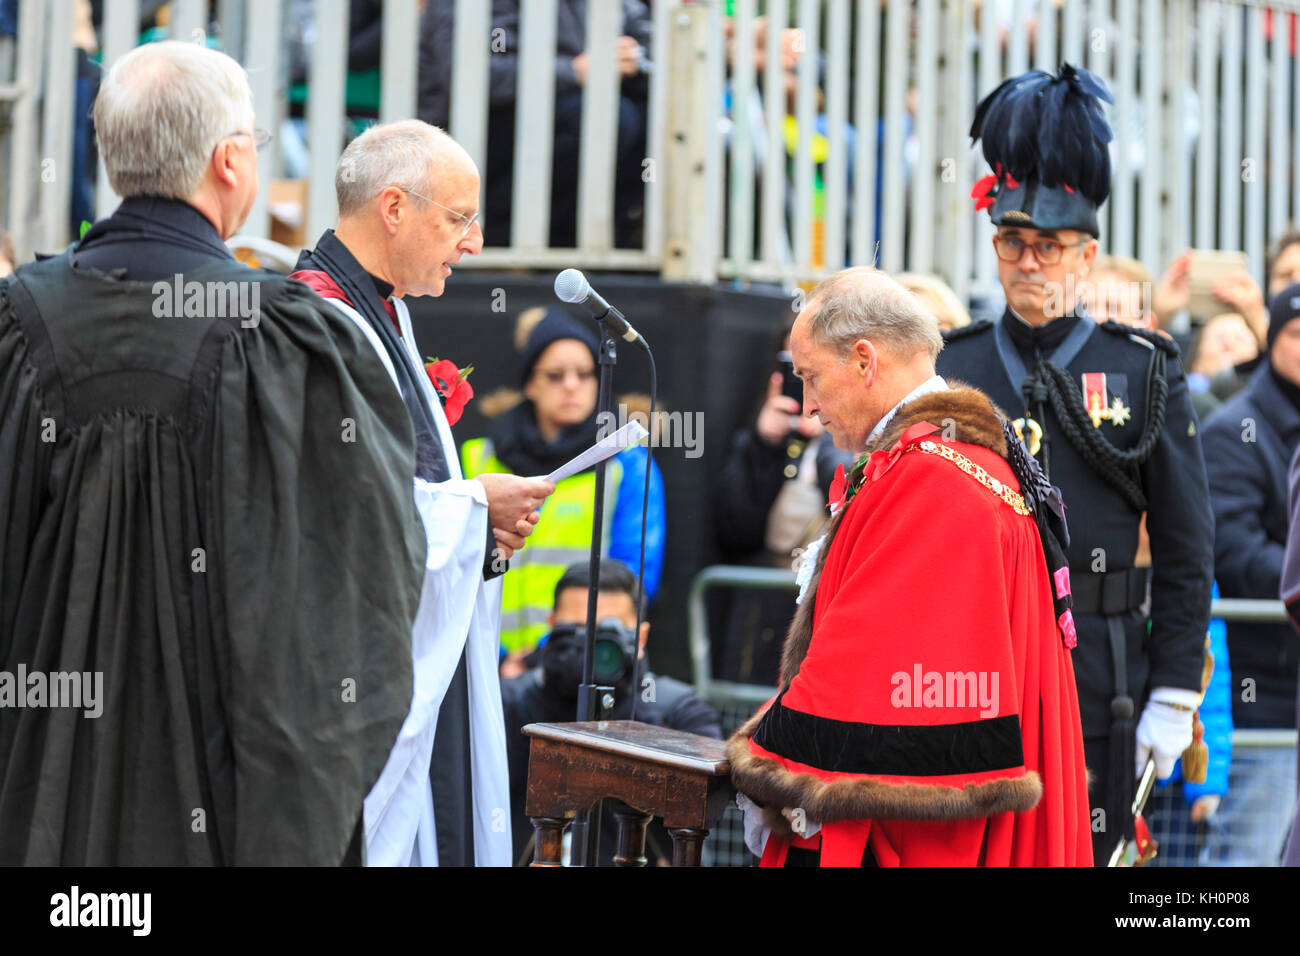 City of London, UK. 11th Nov, 2017. The new Lord Mayor, Charles Bowman is given his blessing outside St Paul's - Stock Image